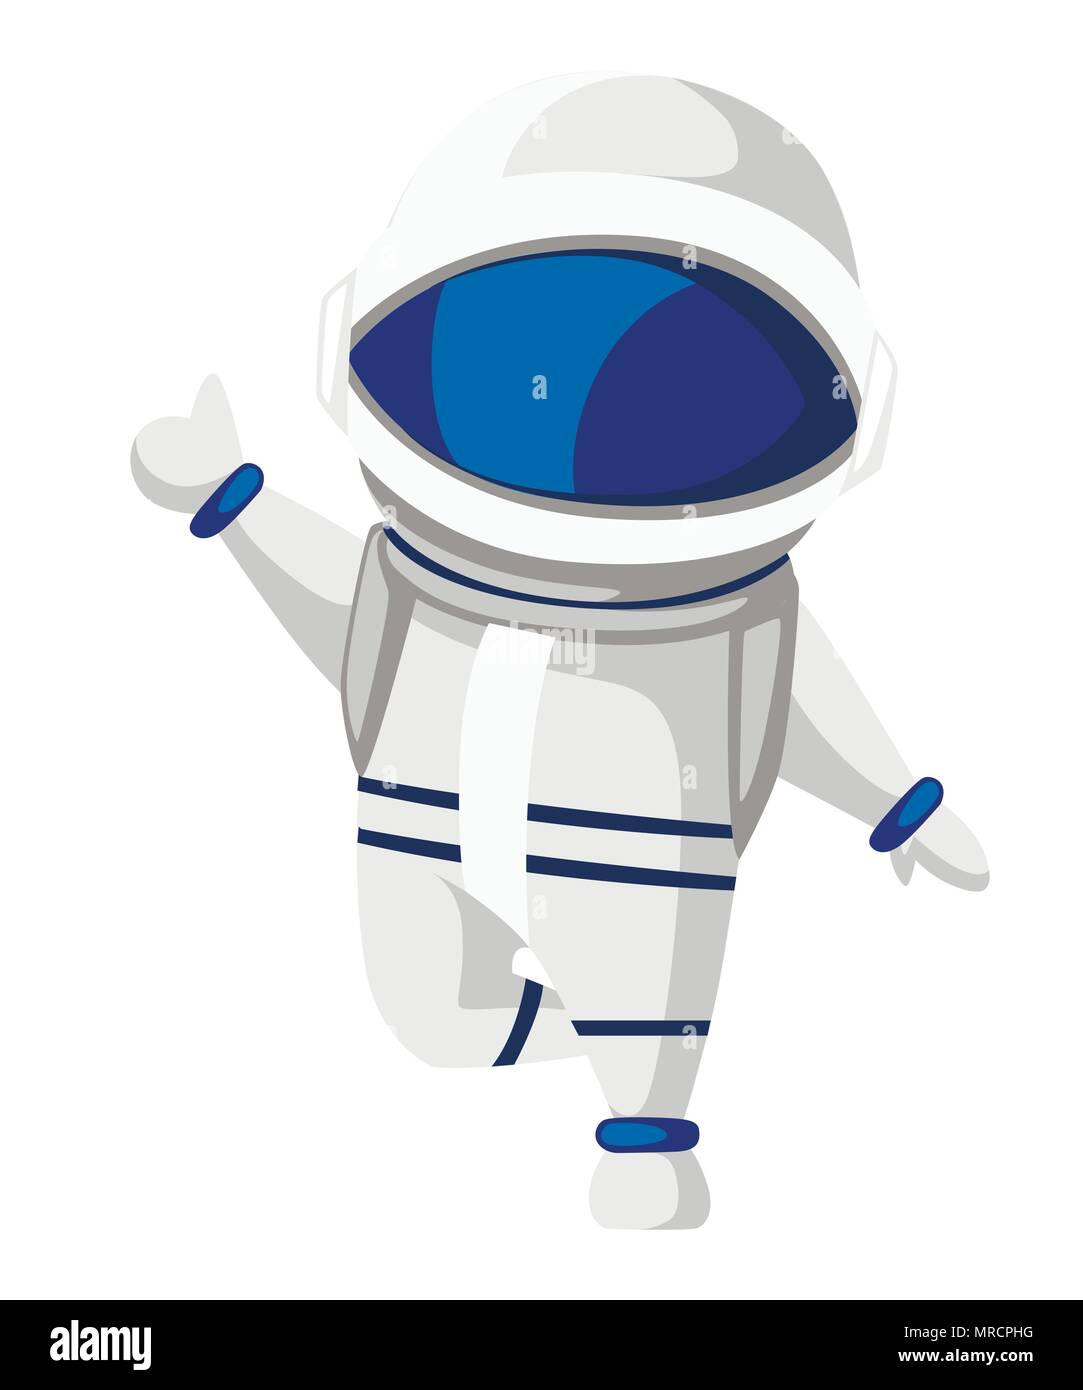 Illustration of astronaut. Cartoon character design. Cute astronaut giving a thumbs up. Vector illustration isolated on white background. - Stock Vector